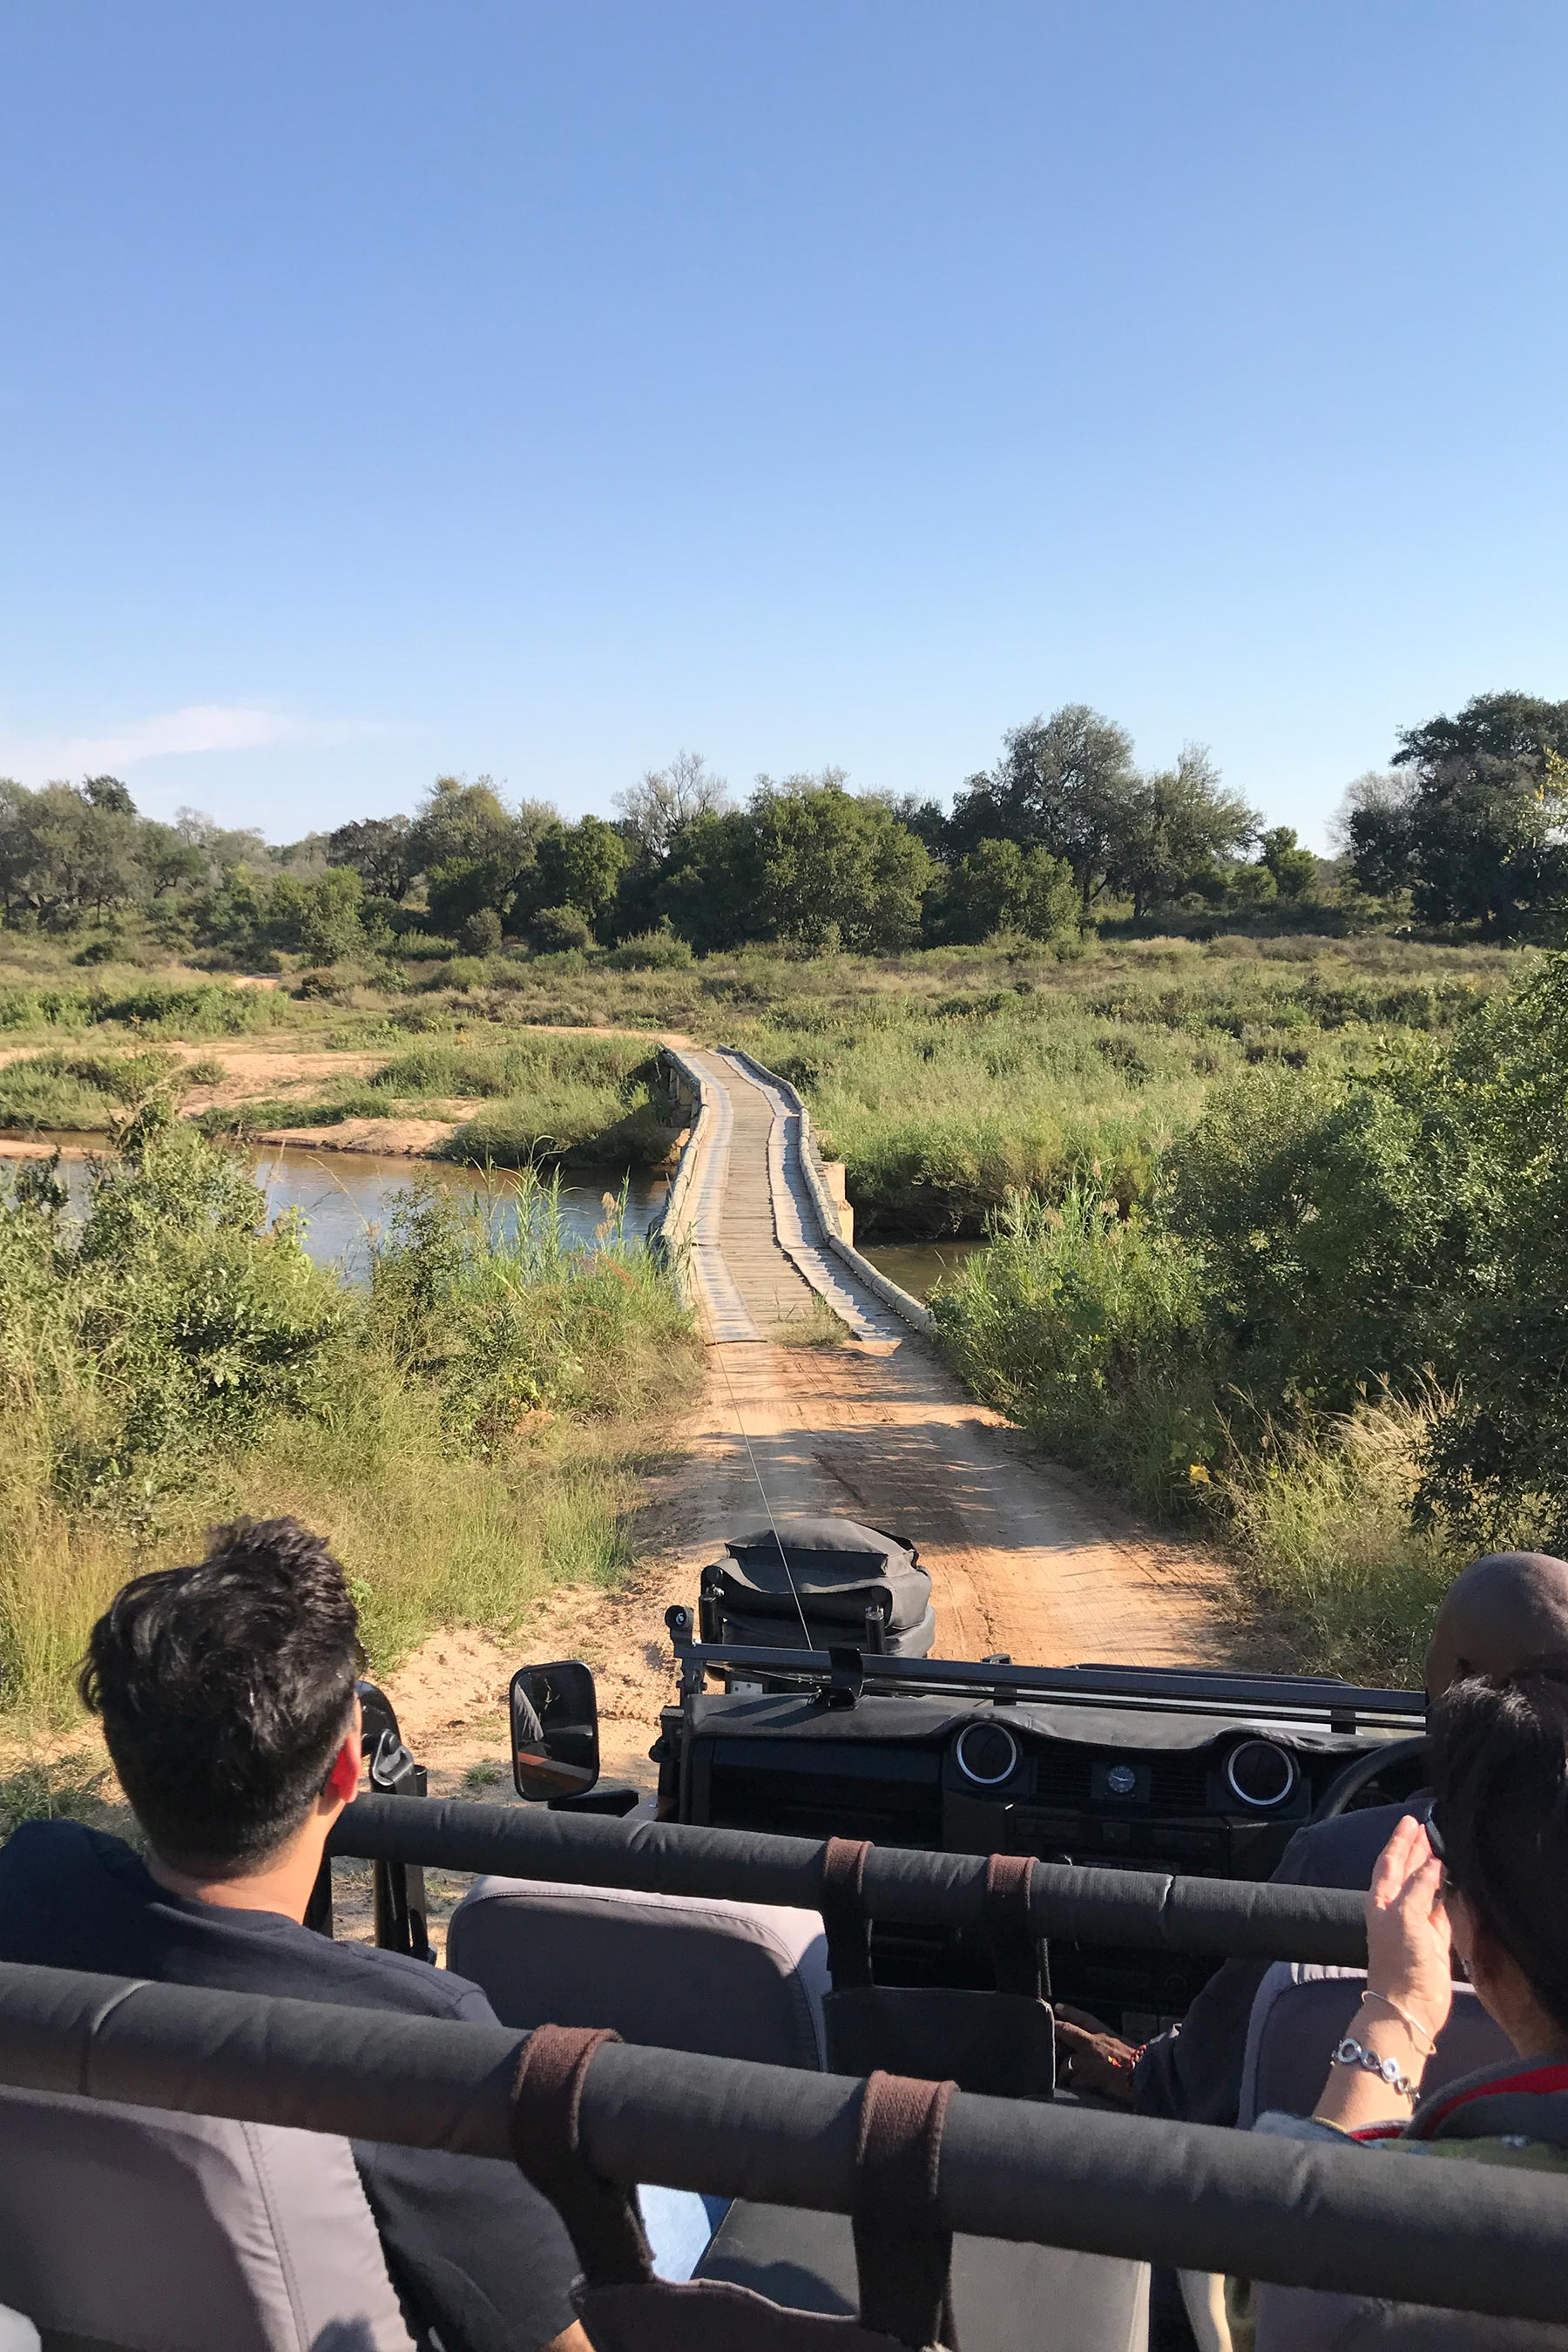 The 2 days that we spent in Kruger National Park as a part of our 10 days in South Africa were seriously the best! #travel #southafrica #krugernationalpark #safari #big5